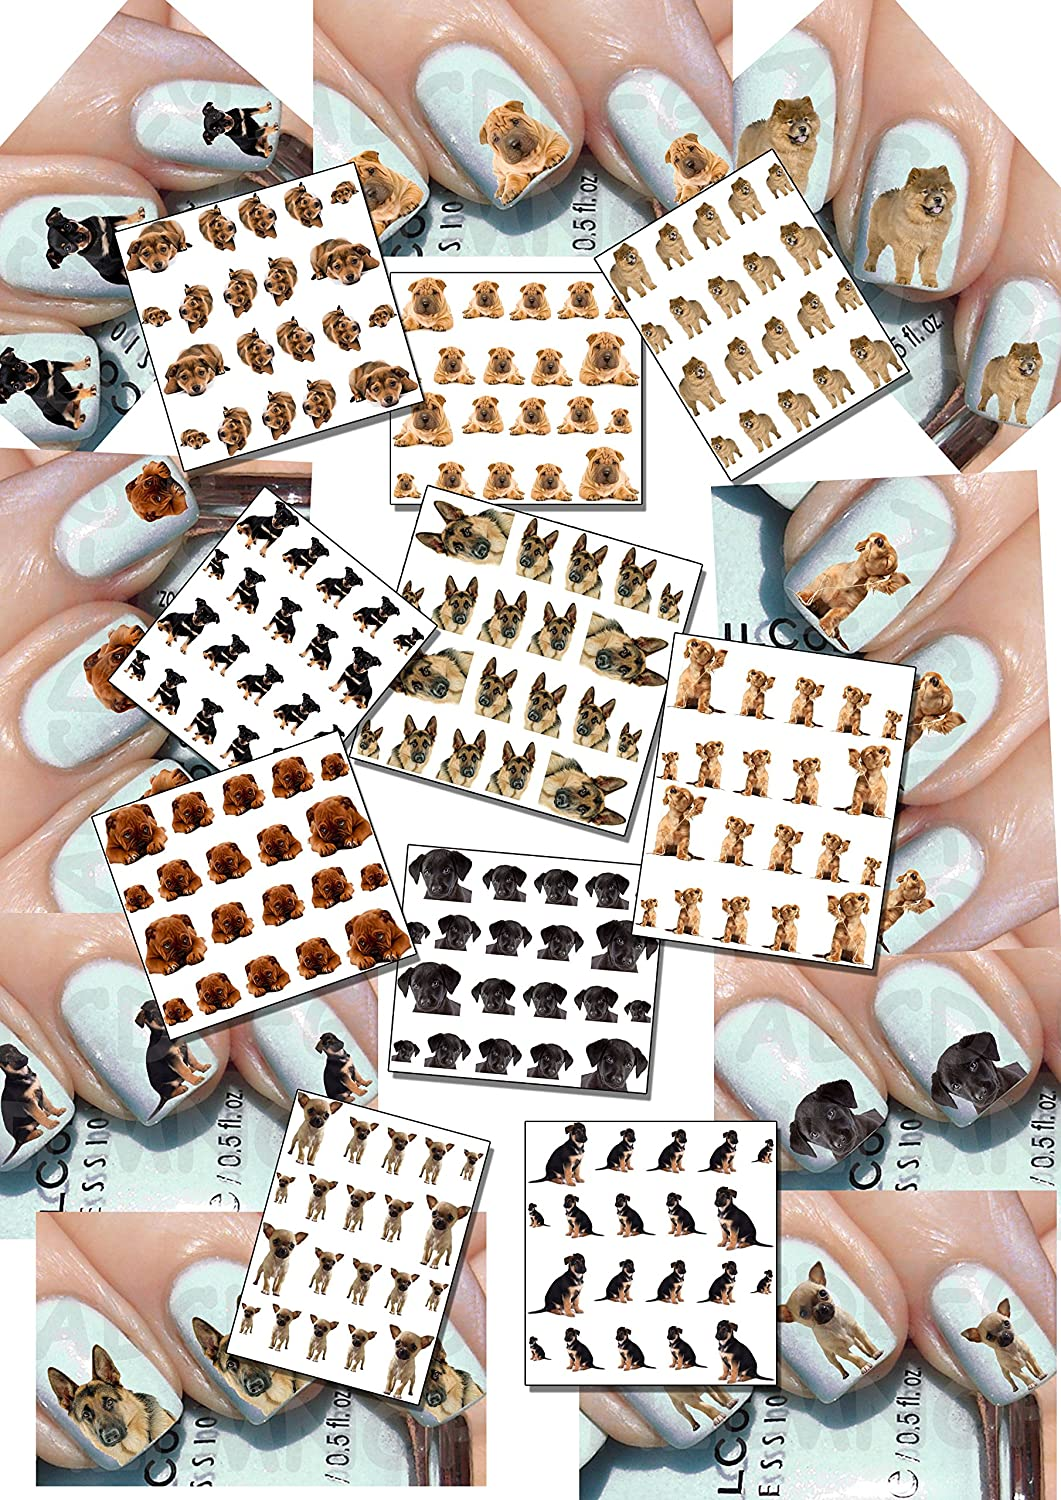 AWS Stock 10 feuillets Water Decal Chiens Chien pour totales 200 Decals. Dix boîtes différentes comme de photos Bulldog Chiwawa Berger Allemand Chow Chow Sharpei Labrador Pincher Dog Nail Art Stickers pour ongles stickers Transfer Tattoo Stickers